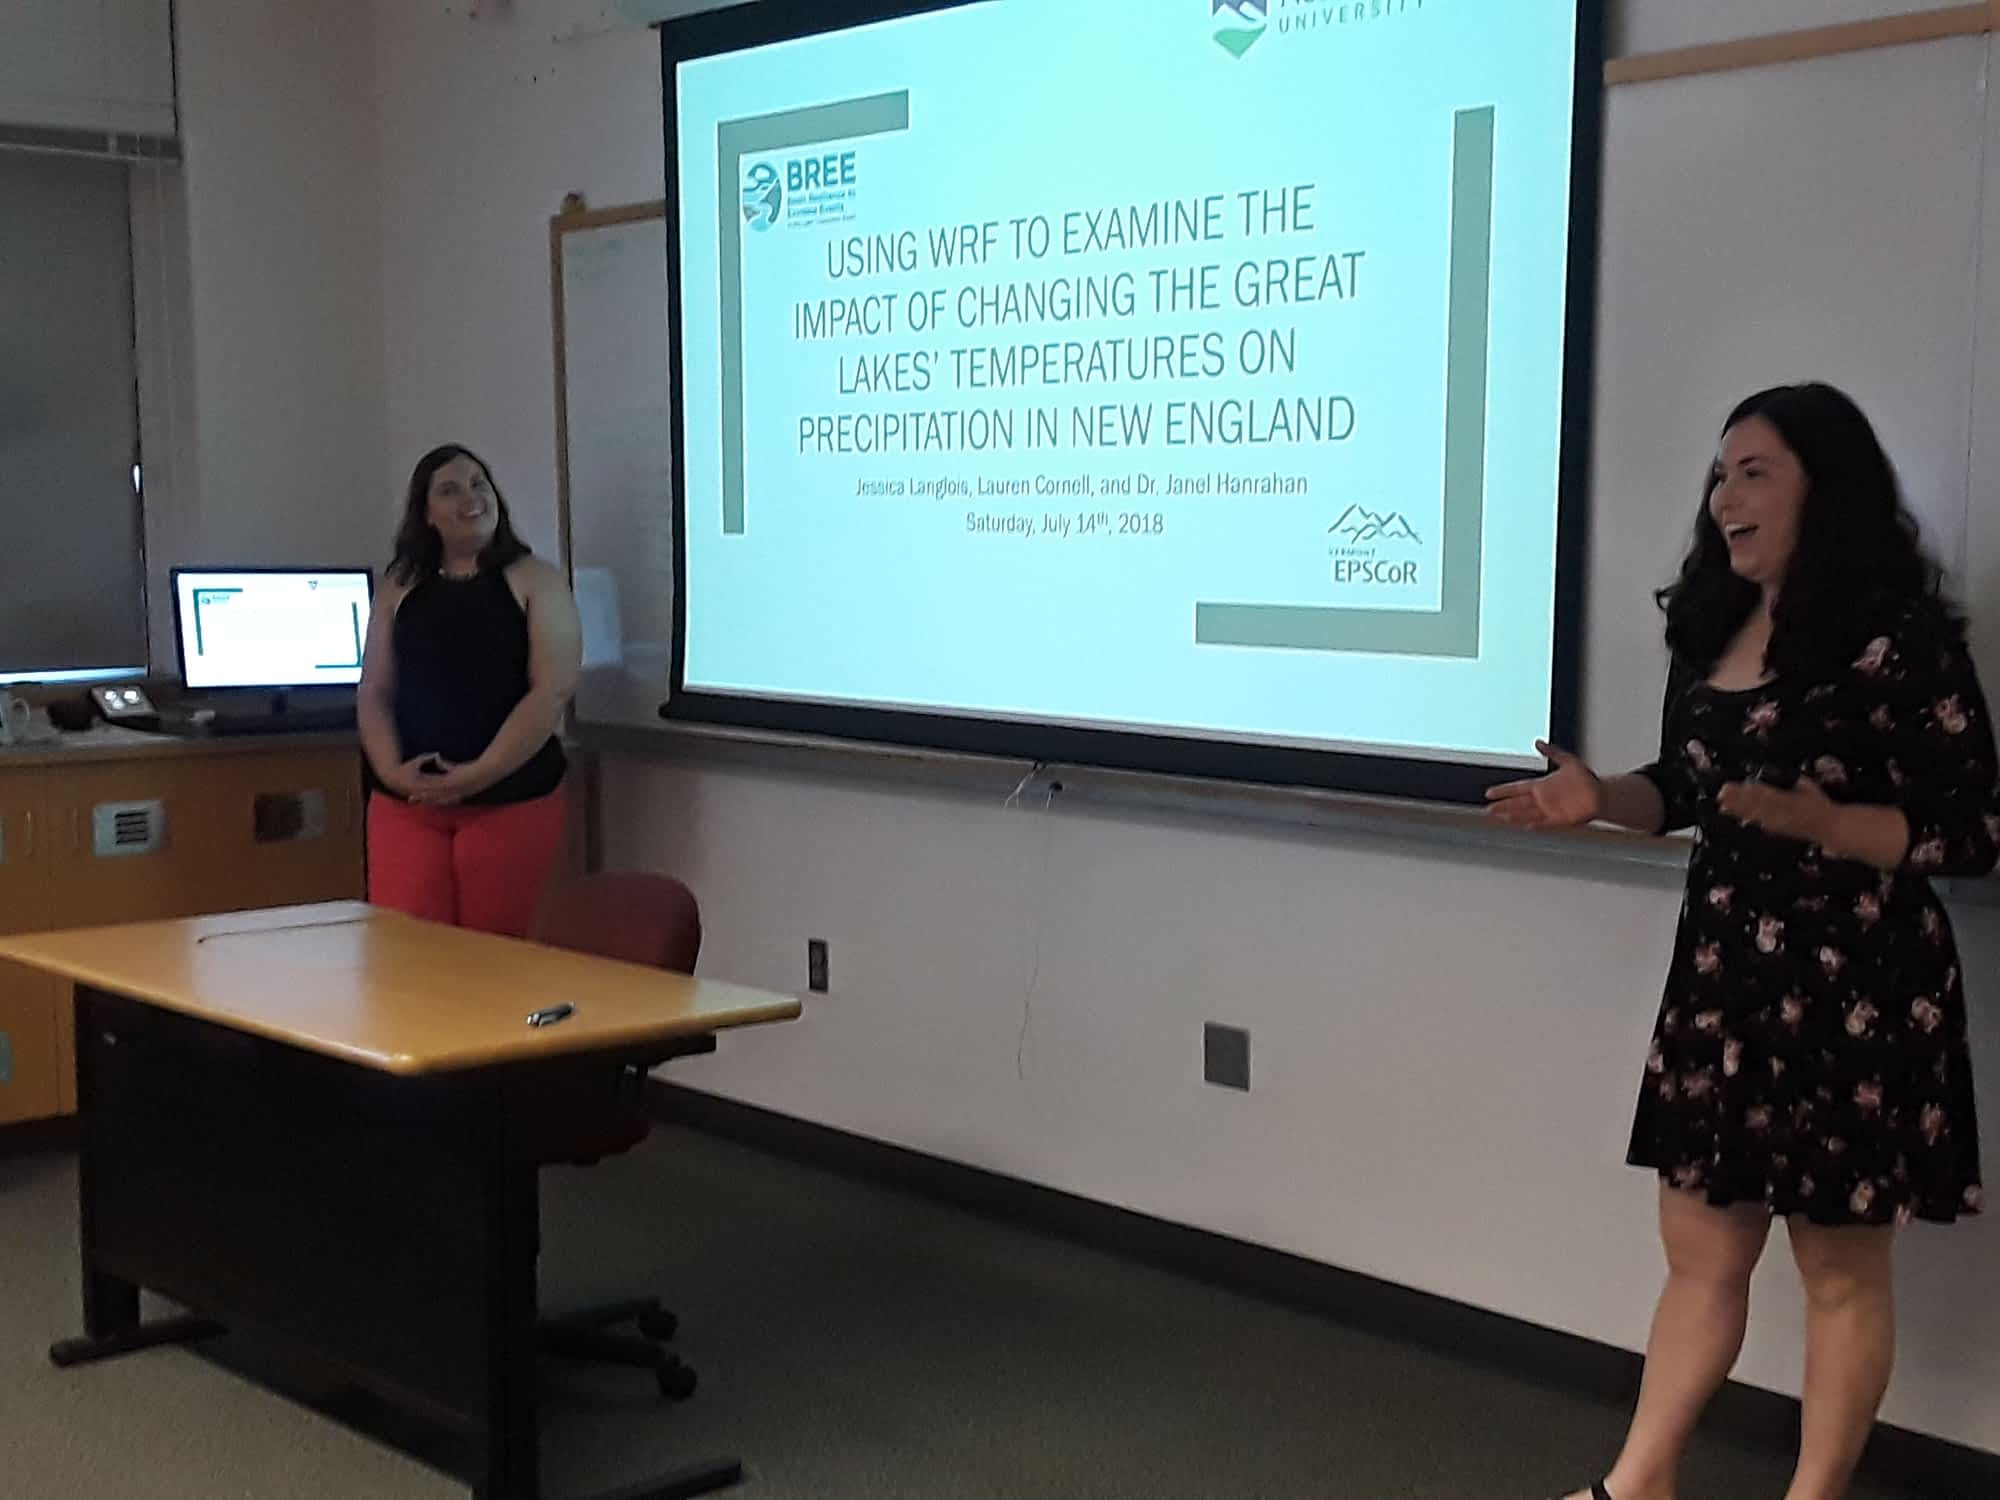 <br><br>Lauren Cornell and Jess Langlois<br>present their findings on how Great Lakes' water temperatures affect modeled downwind precipitation